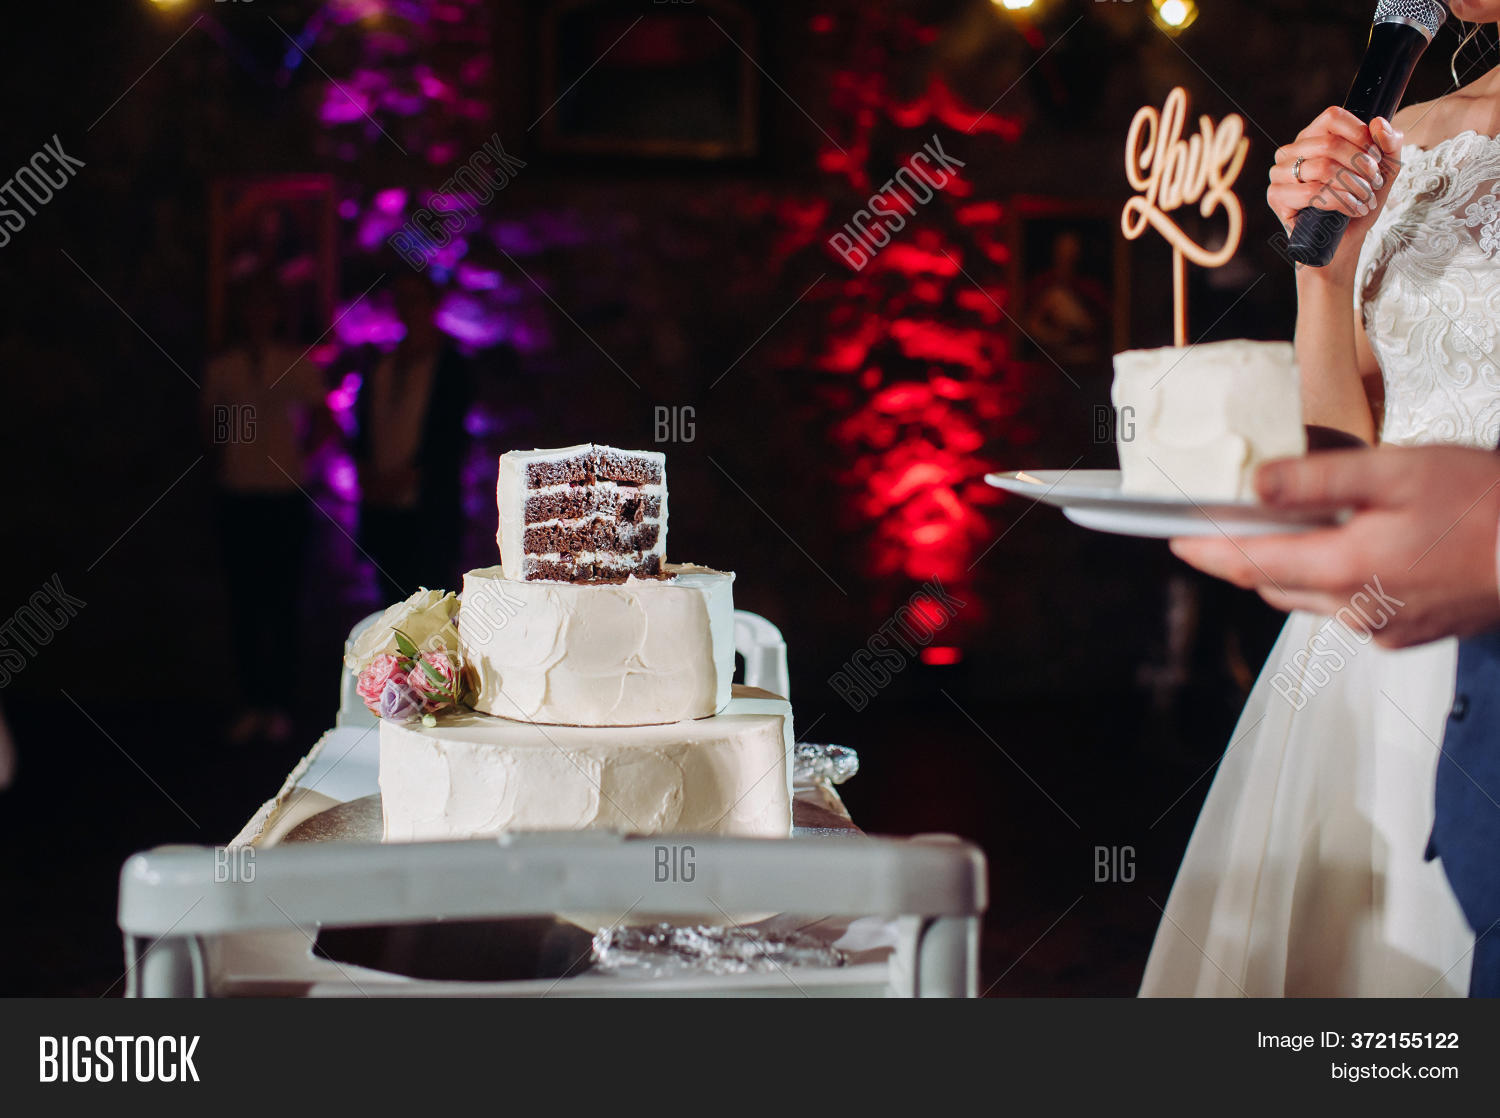 Bride Groom Cut Their Image Photo Free Trial Bigstock